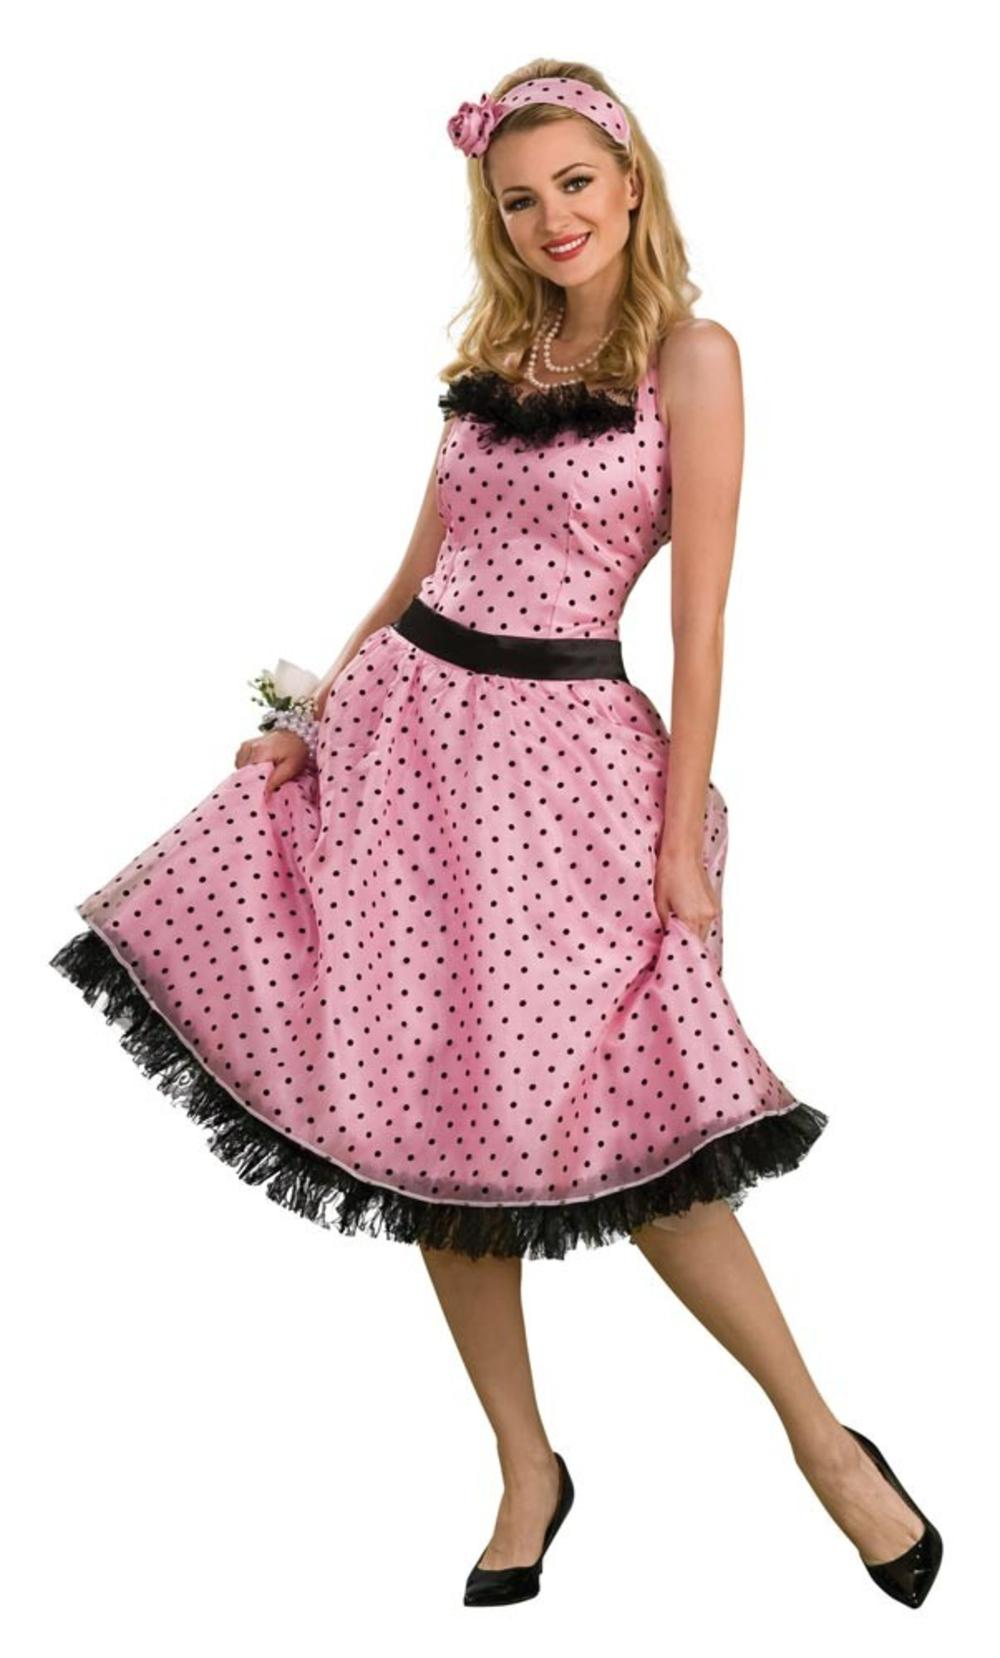 Ladies Polka Dot Prom 1950s Fancy Dress 50's Rock n Roll Womens Costume Outfit